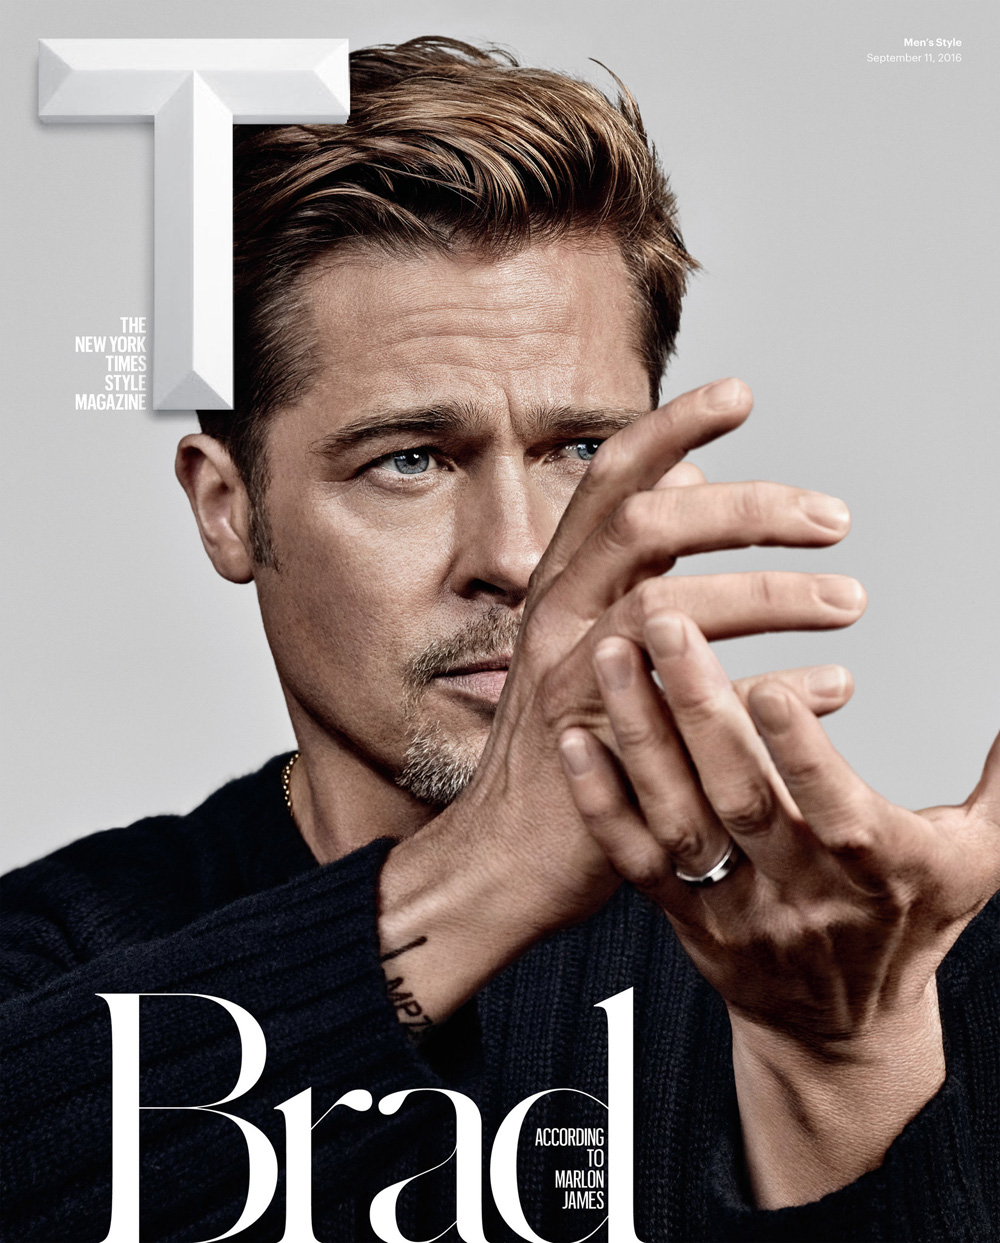 Marlon James writes about Actor Brad Pitt in the new man's fashion issue of T Magazine F/W 2016 shot by photographer Craig McDean. Styled by Jason Rider.